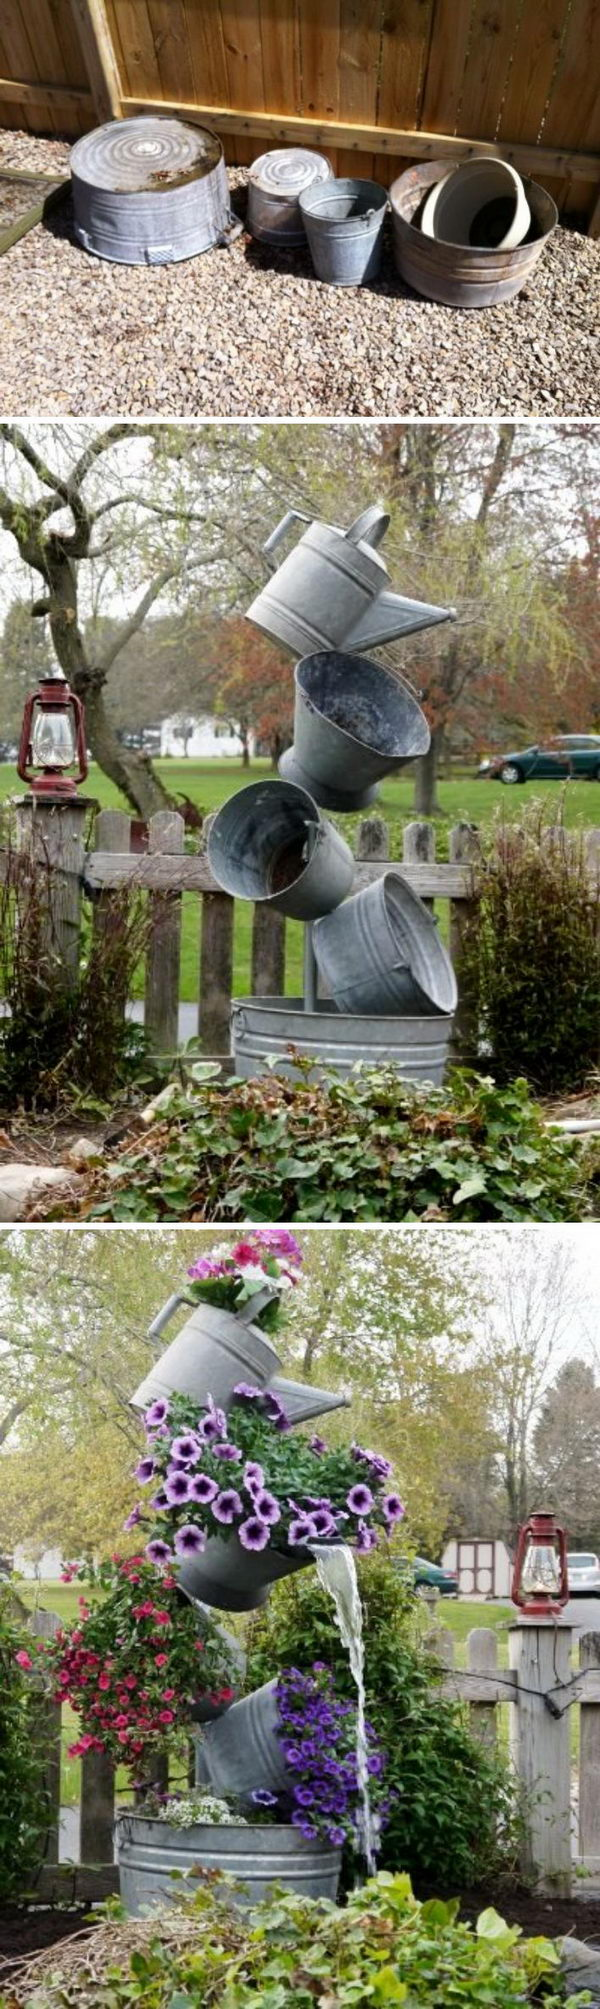 DIY Flower Tower Combining Tipsy Planters And Garden Fountains